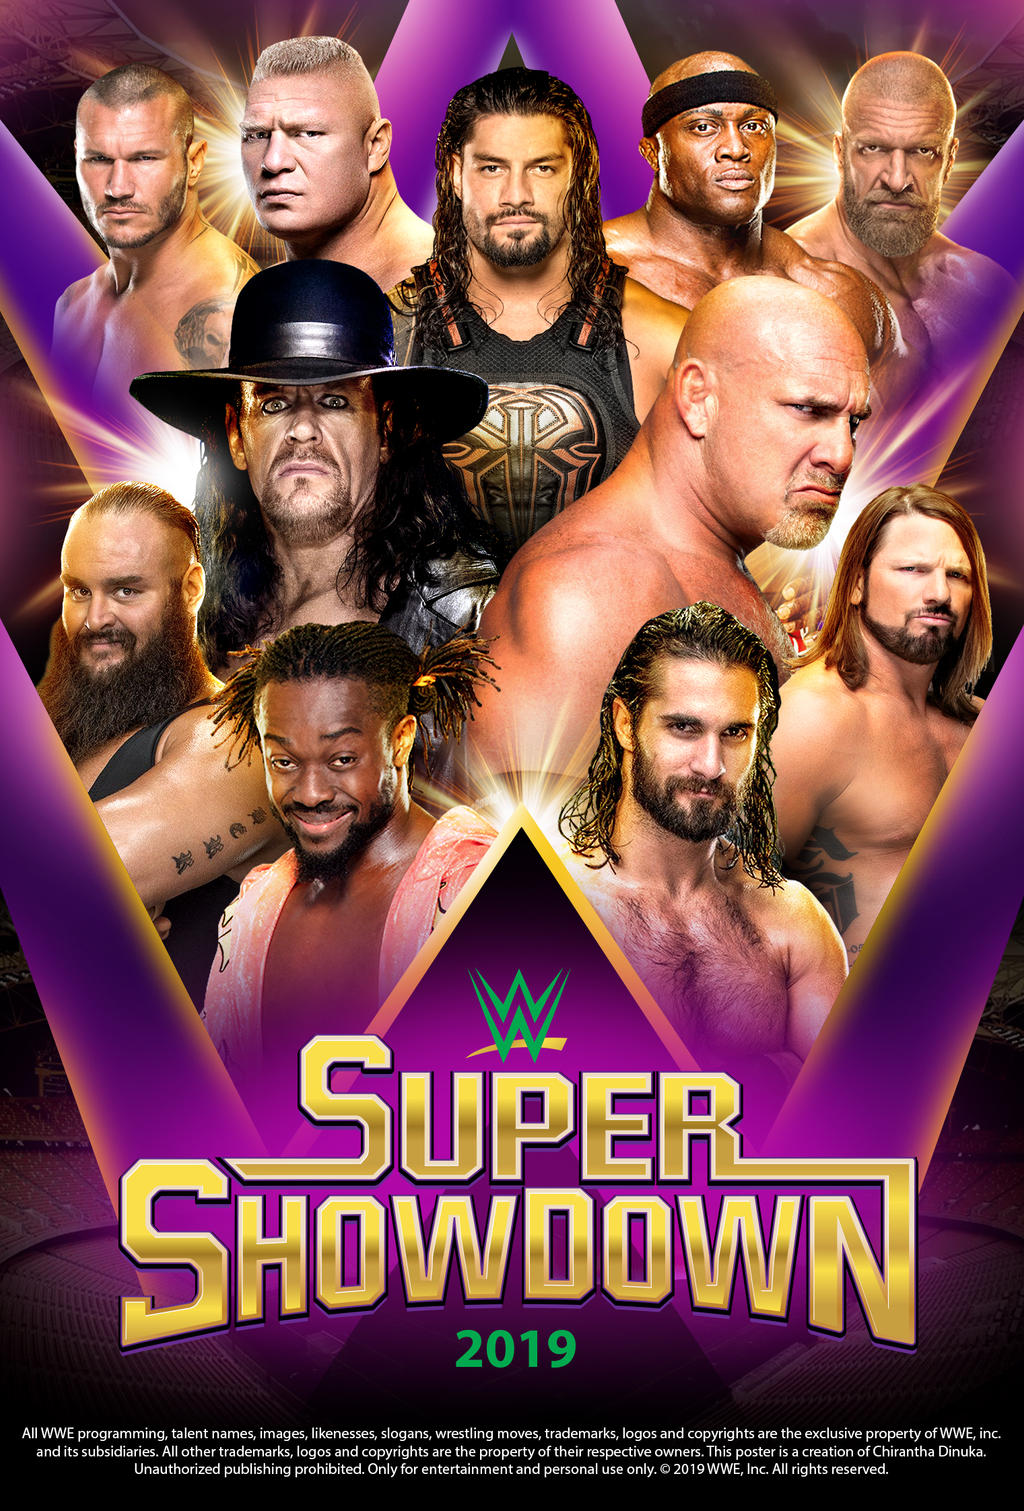 Cartel de WWE Super ShowDown 2019 por Chirantha